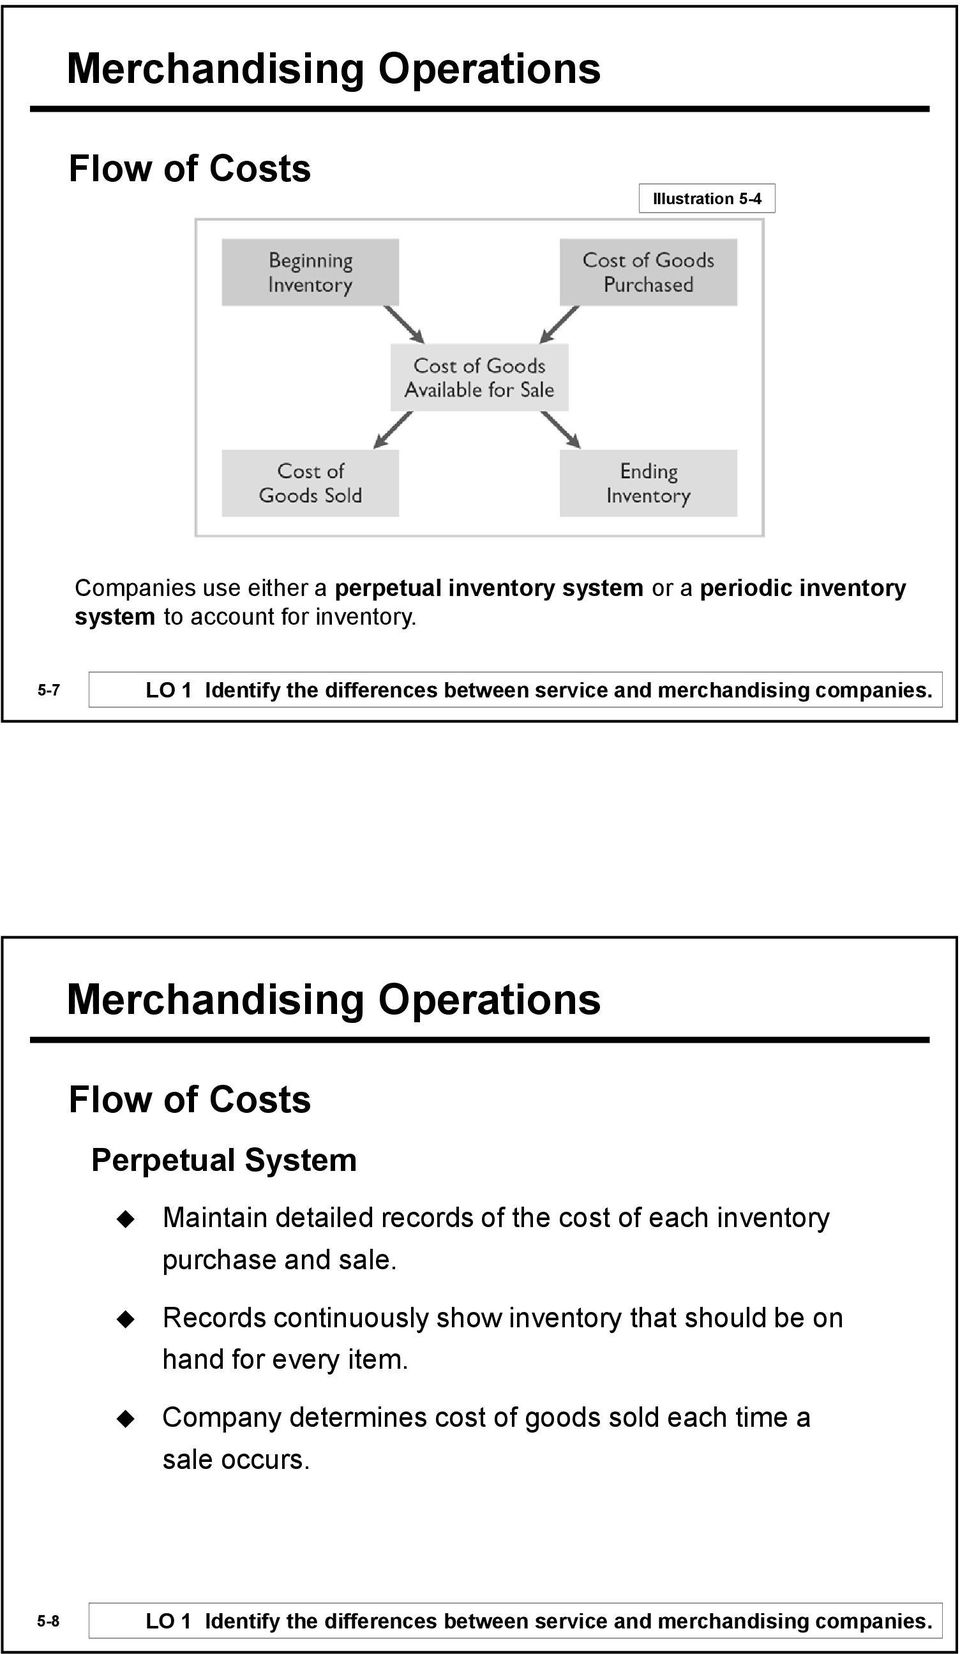 Merchandising Operations Flow of Costs Perpetual System Maintain detailed records of the cost of each inventory purchase and sale.